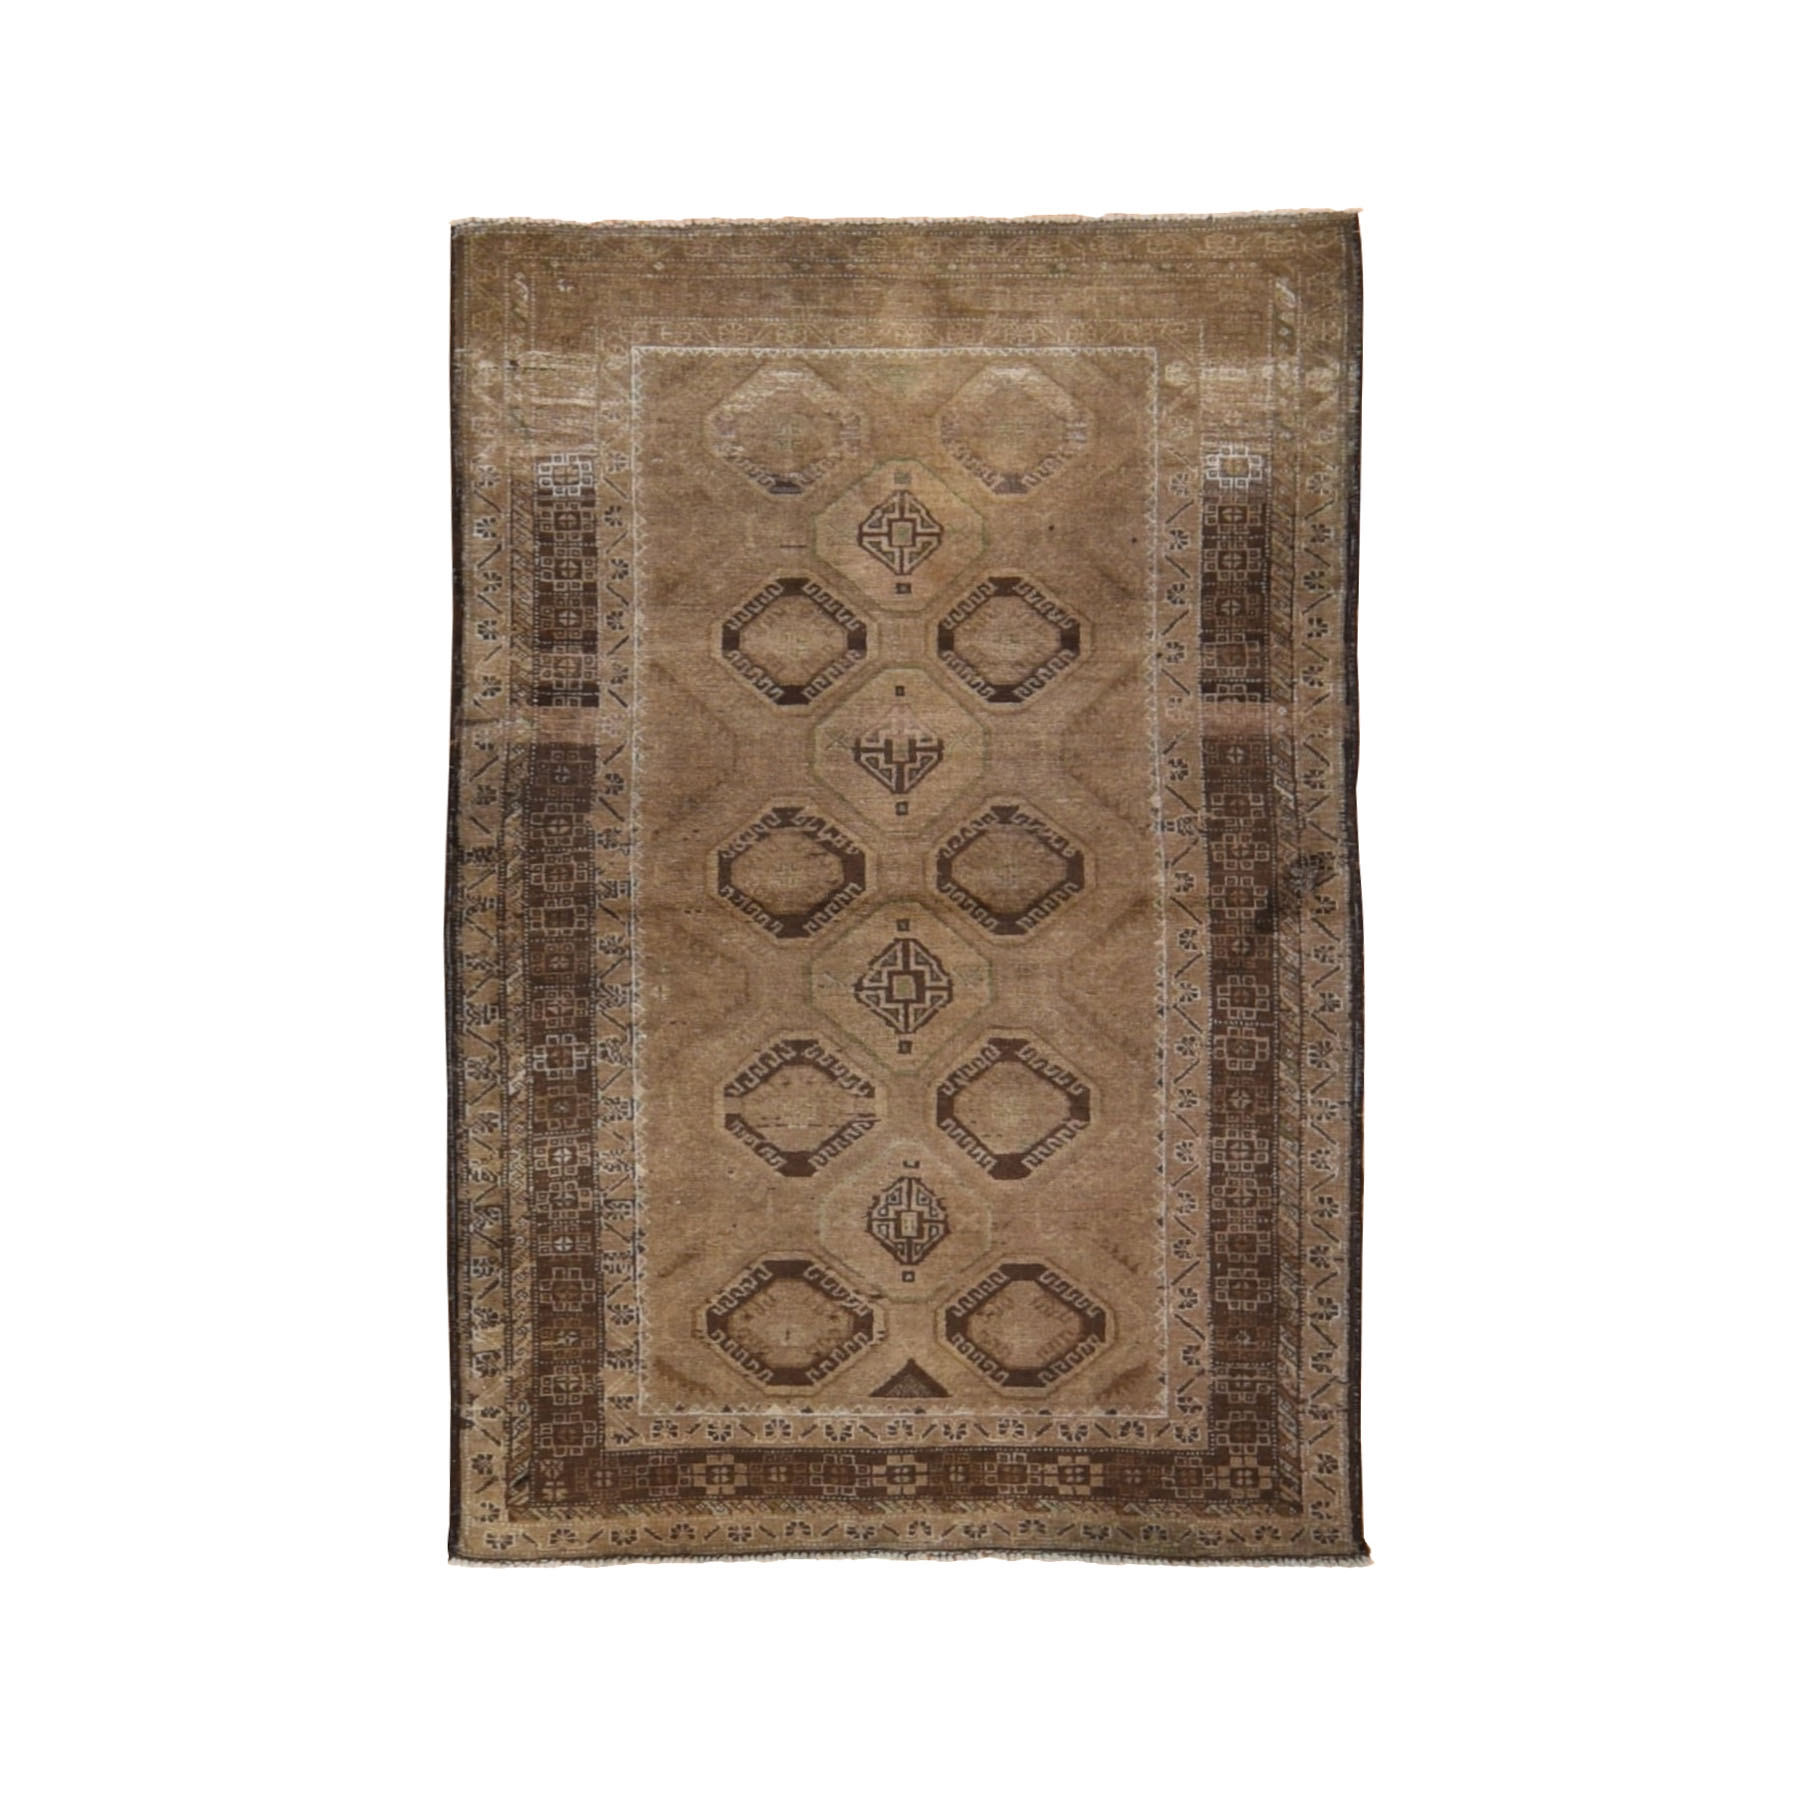 "3'7""x6'1"" Washed Out With Natural Colors Abrush Tribal Hand Woven Oriental Rug"